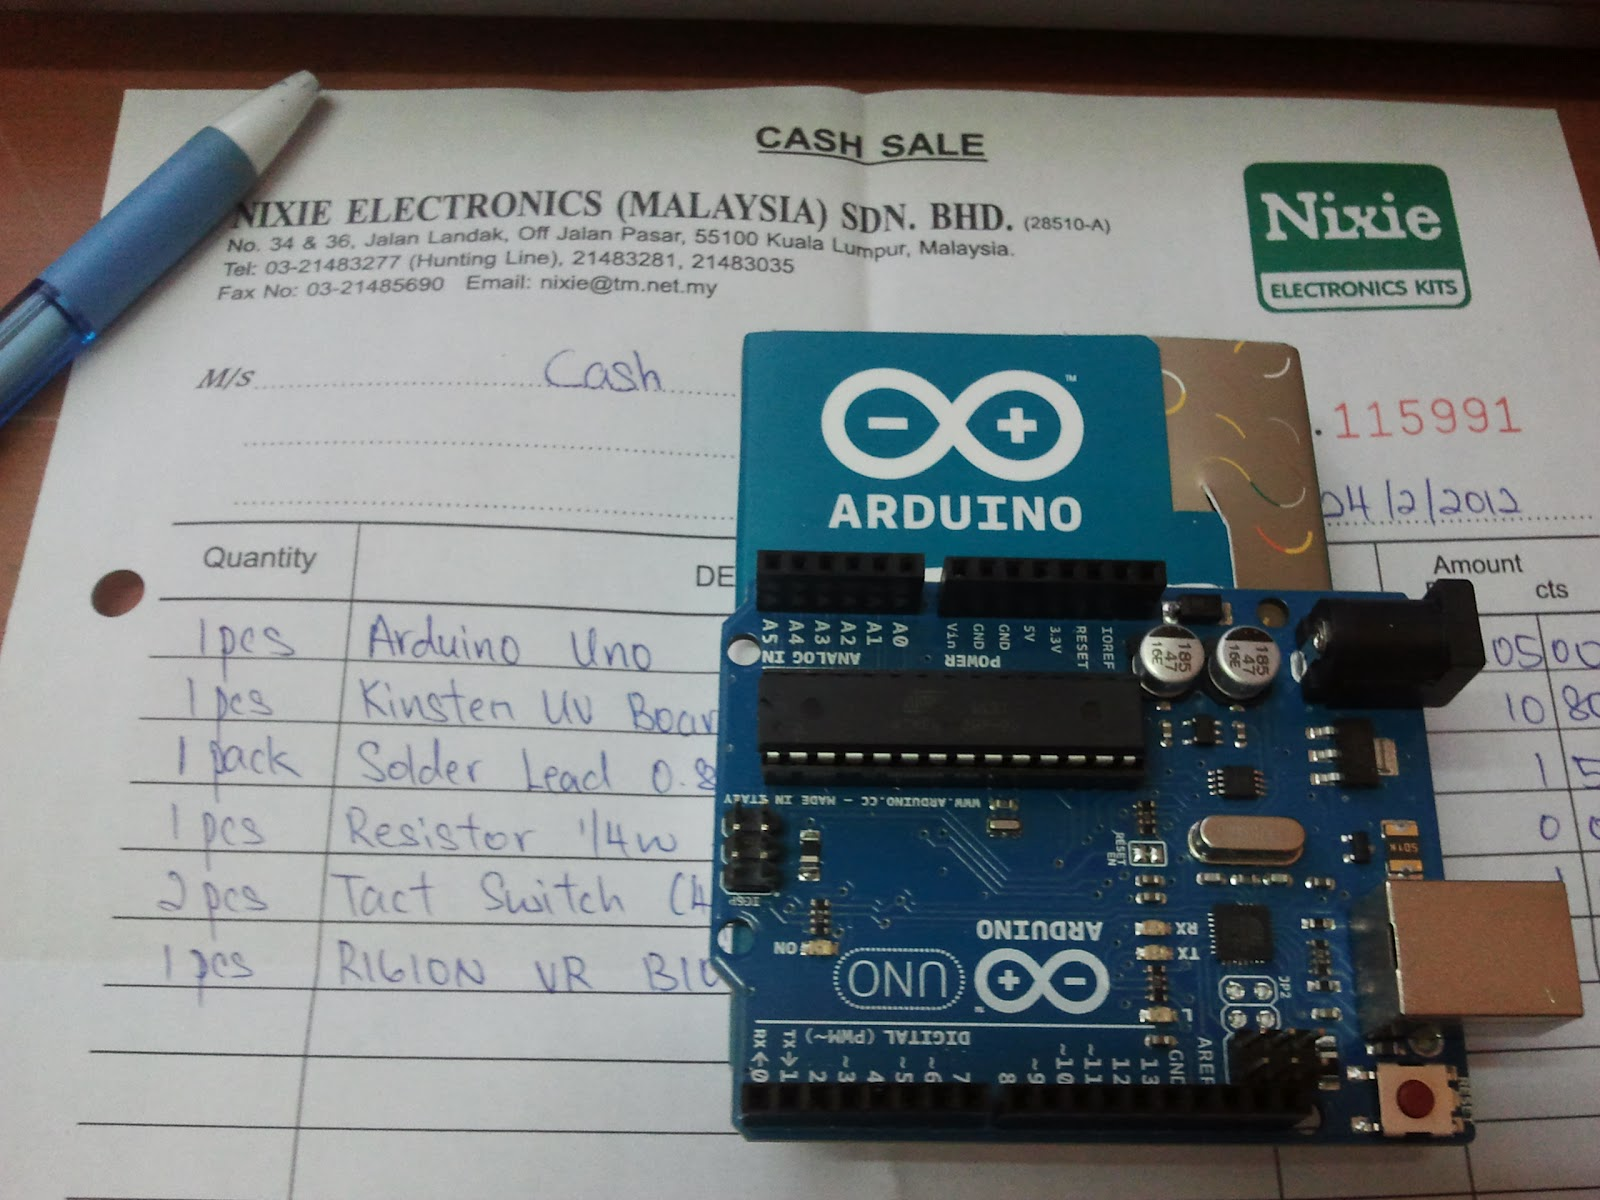 Audiometer Week 7 13 Arduino Arduinokit Quite Limited But I Do Get To Go Jalan Pasar Buy Kit Bought Uno For Rm105 At Nixie Electronics With Some Other Componets